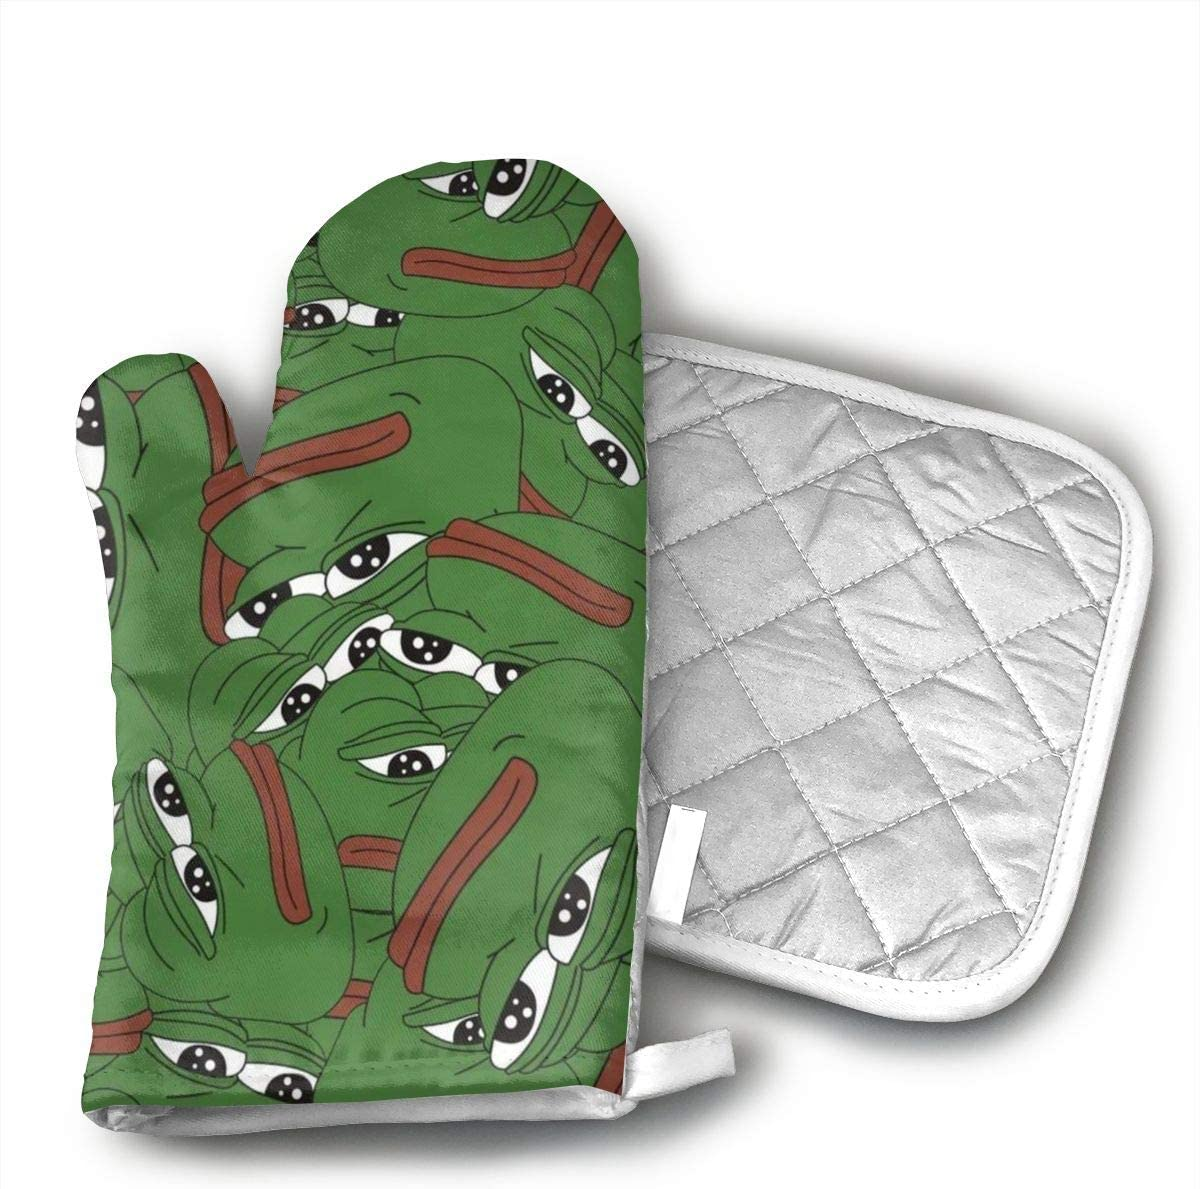 LAIEHG Pepe The Sad Frog Oven Mitts and Pot Covers 100% Cotton